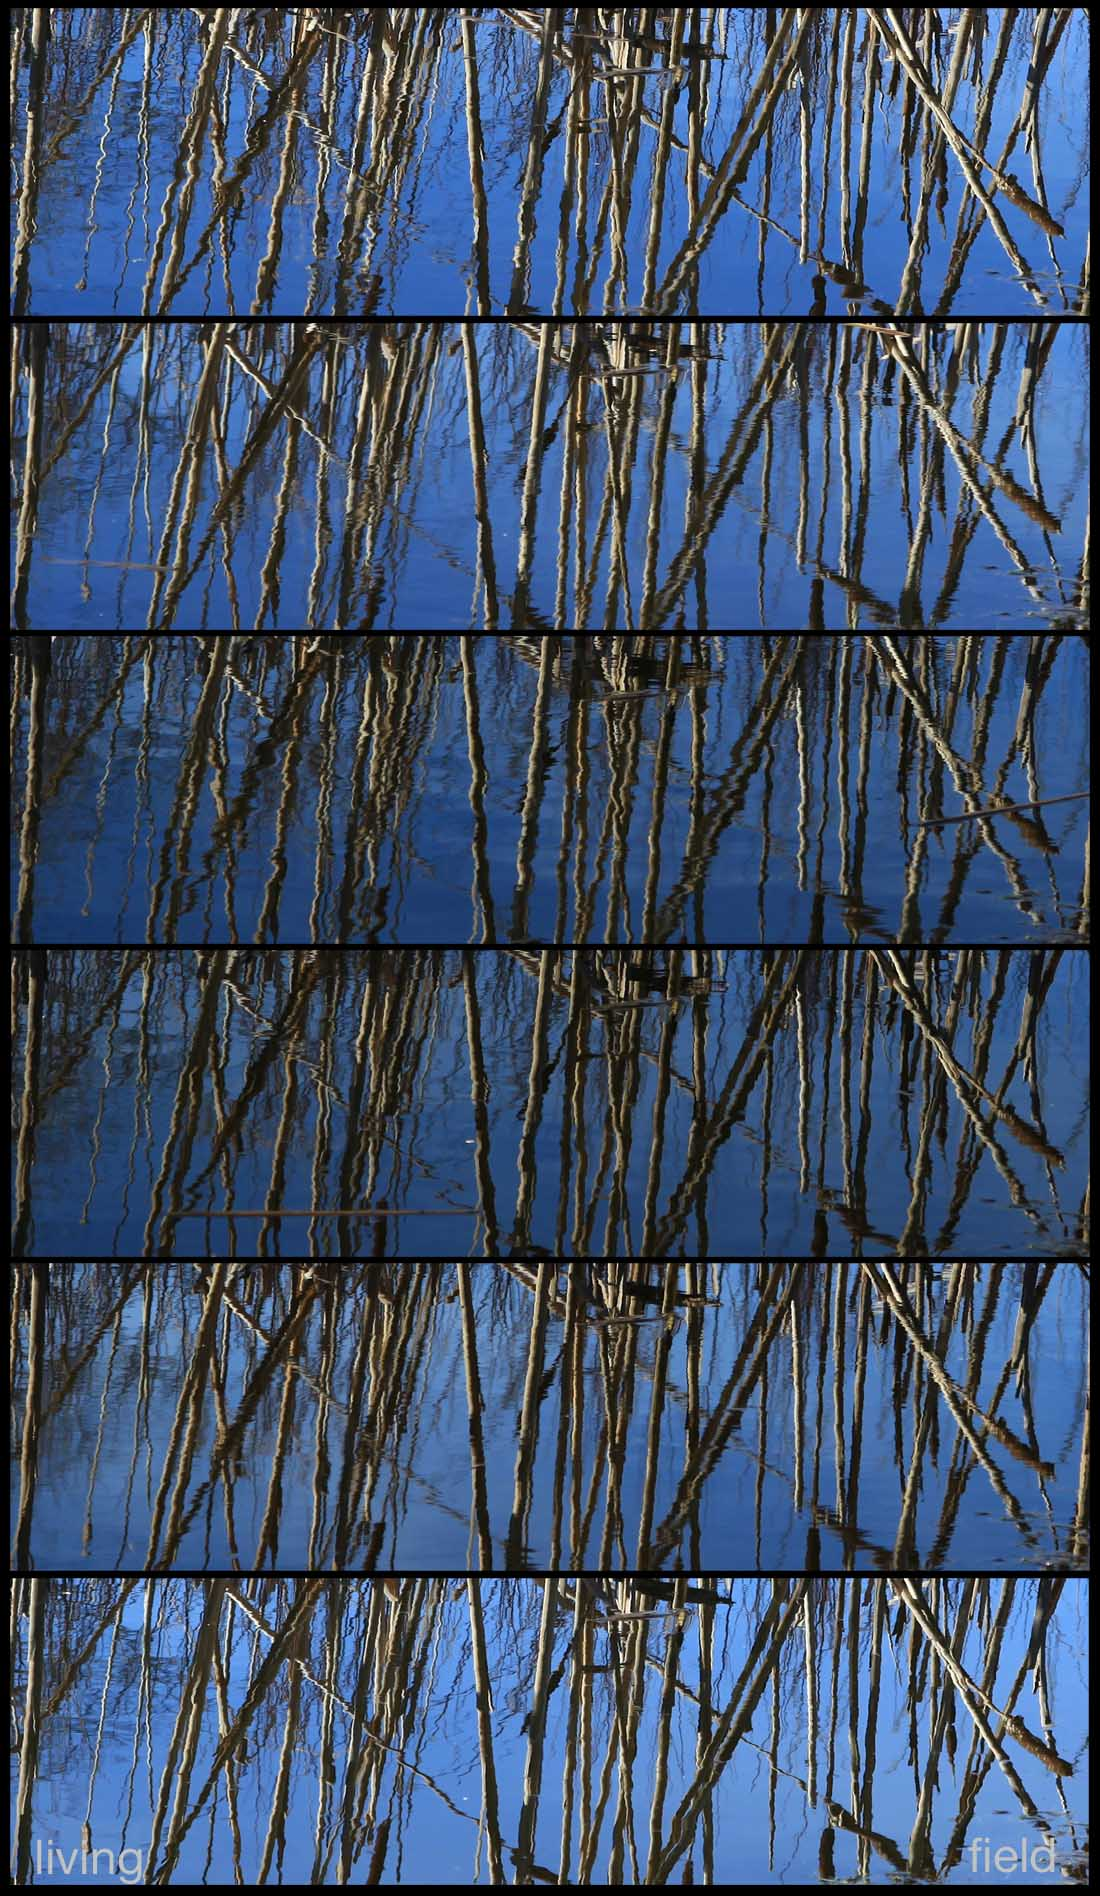 Bulrush stems reflected in a pond, eclipse 20 March 2015 (Squire / Living Field)